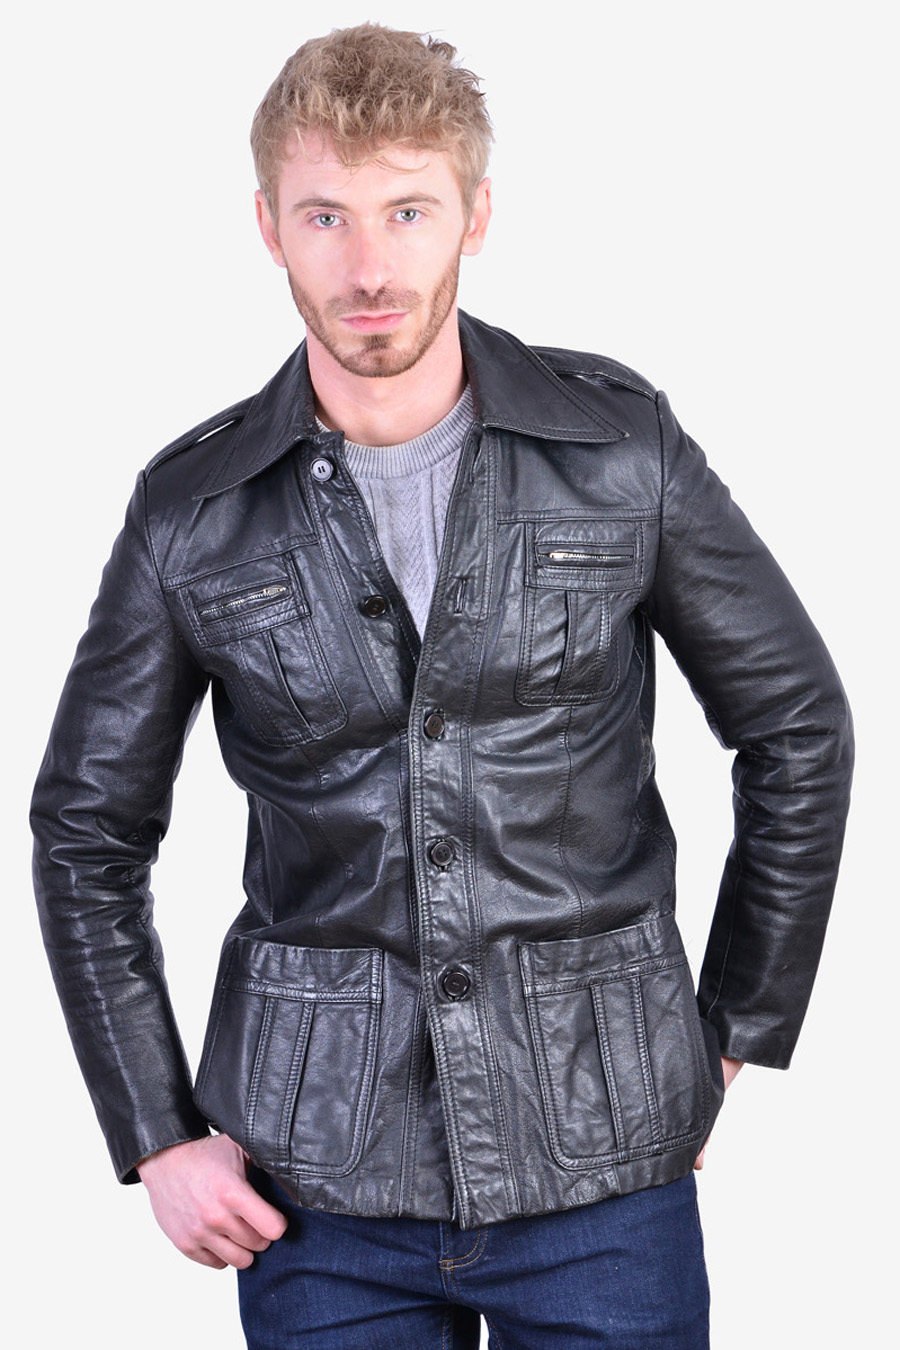 Retro vintage leather jacket